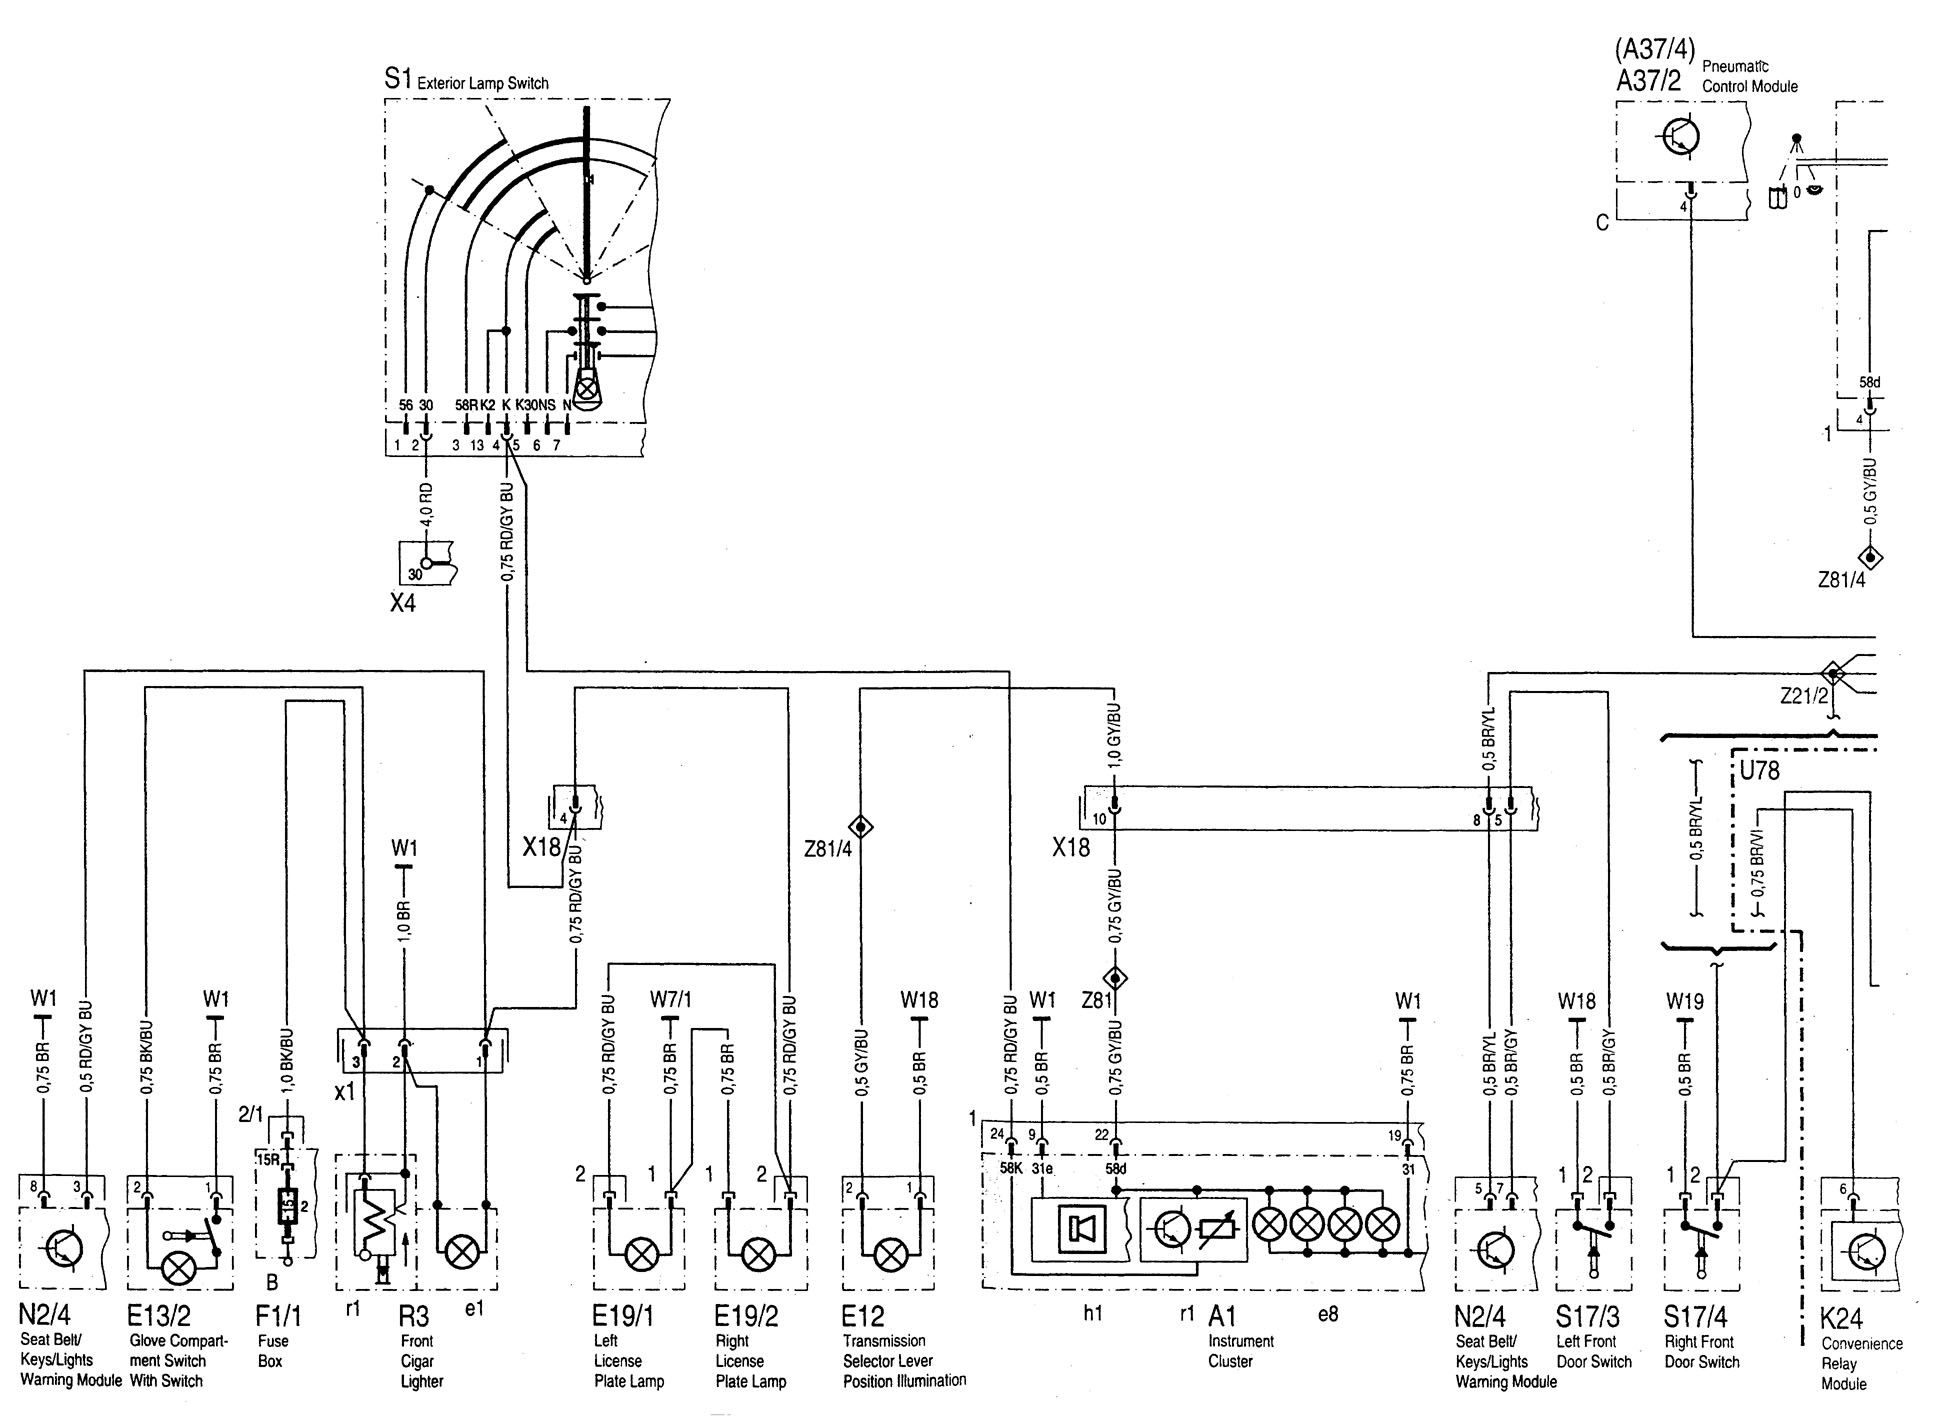 Mercedes Benz C280 1994 1997 Wiring Diagrams Exterior Outside Fuse Box Diagram Jeep Wrangler C220 Lighting Part 1